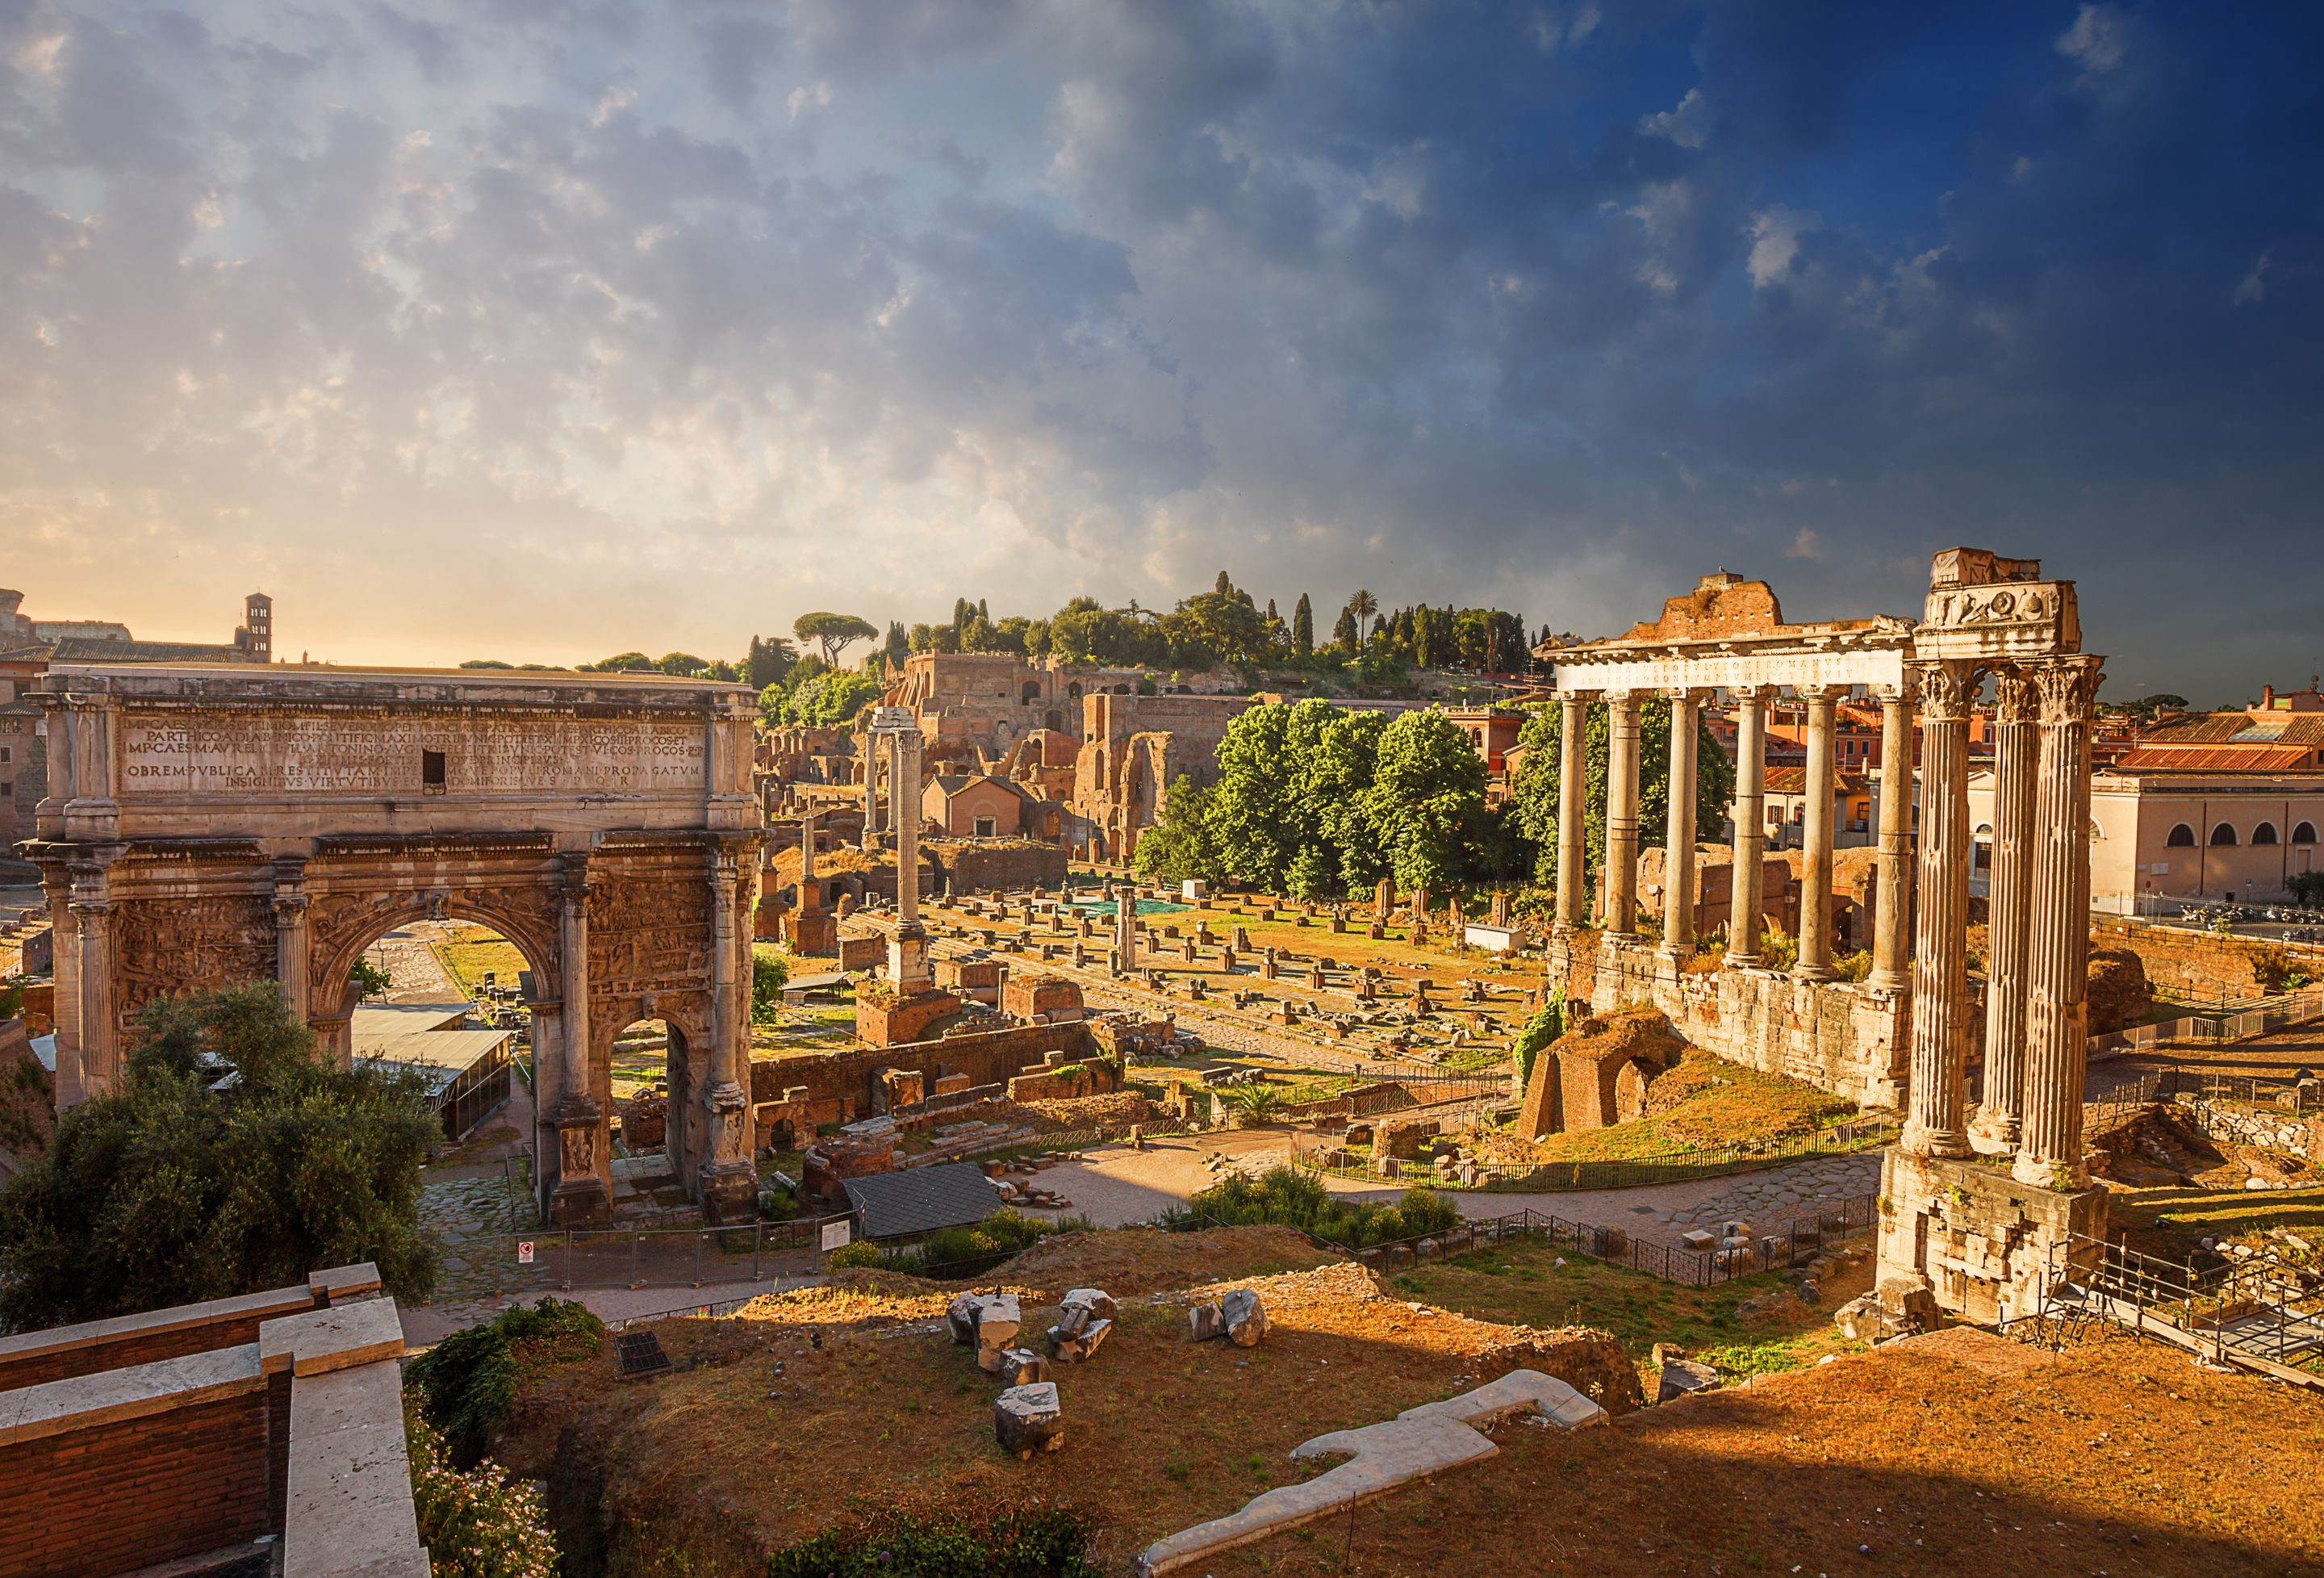 The Ruins Of The Roman Forum Made Up Of Marble Columns